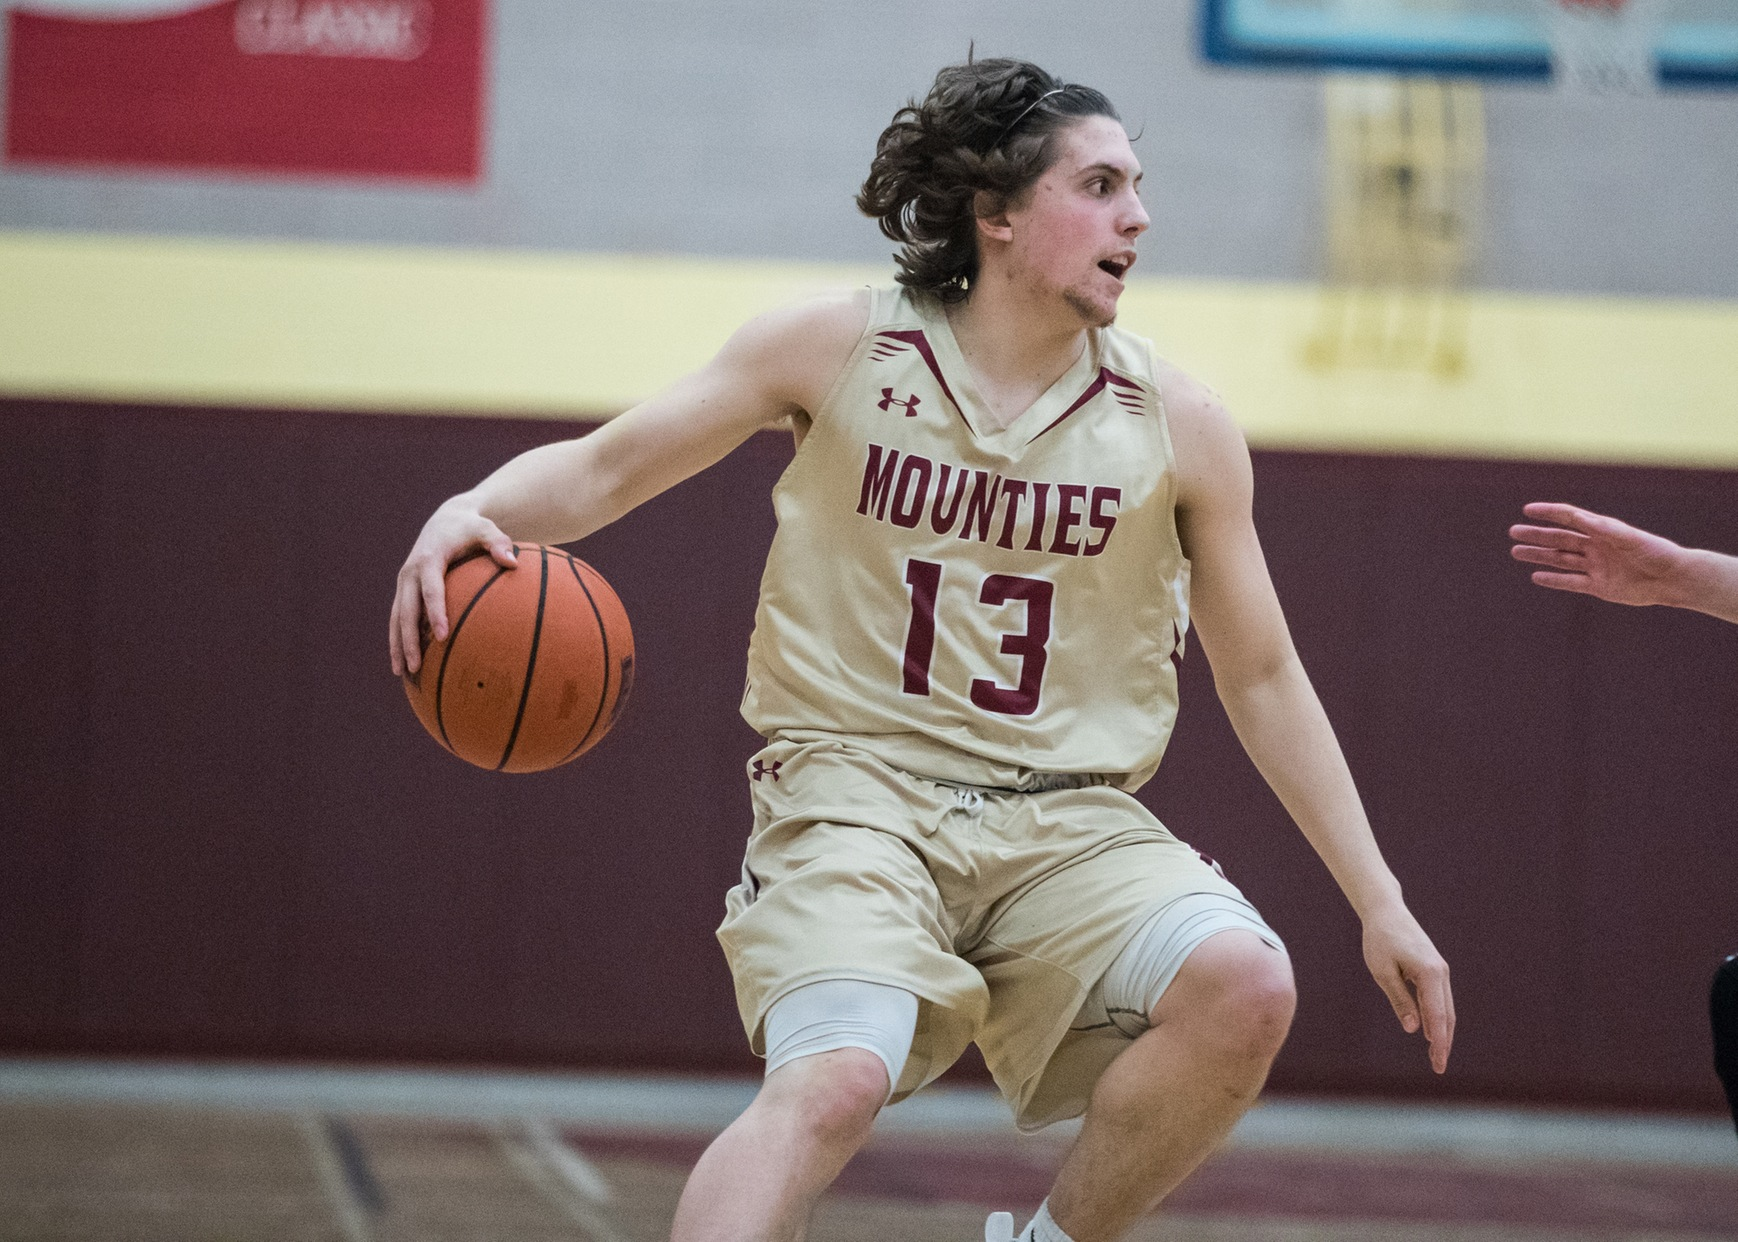 Mounties Roll Over Tommies